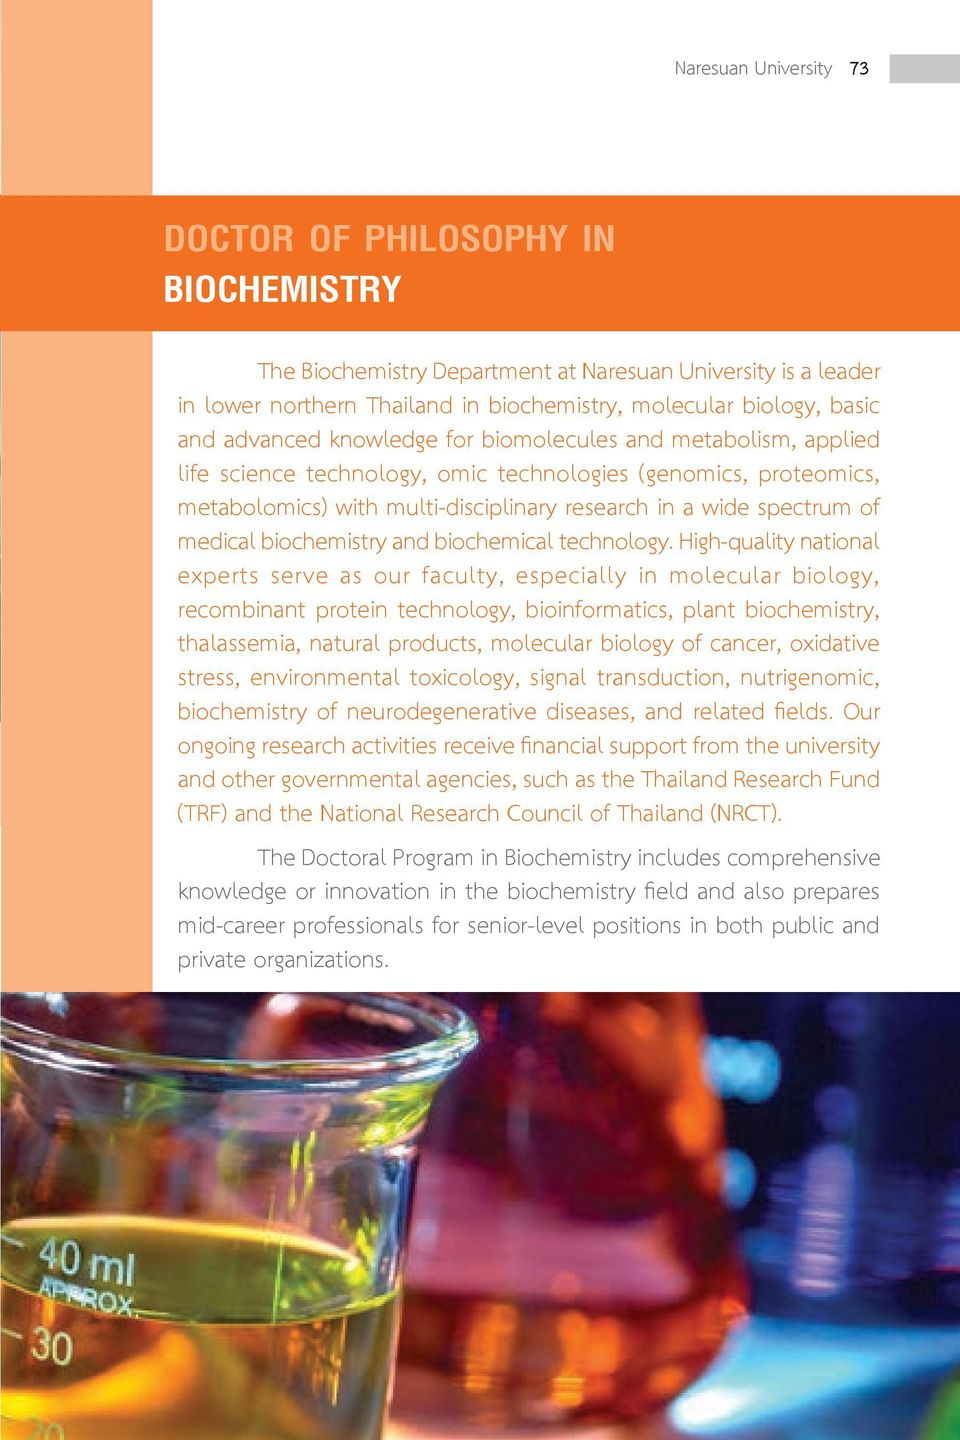 medical biochemistry and biochemical technology.